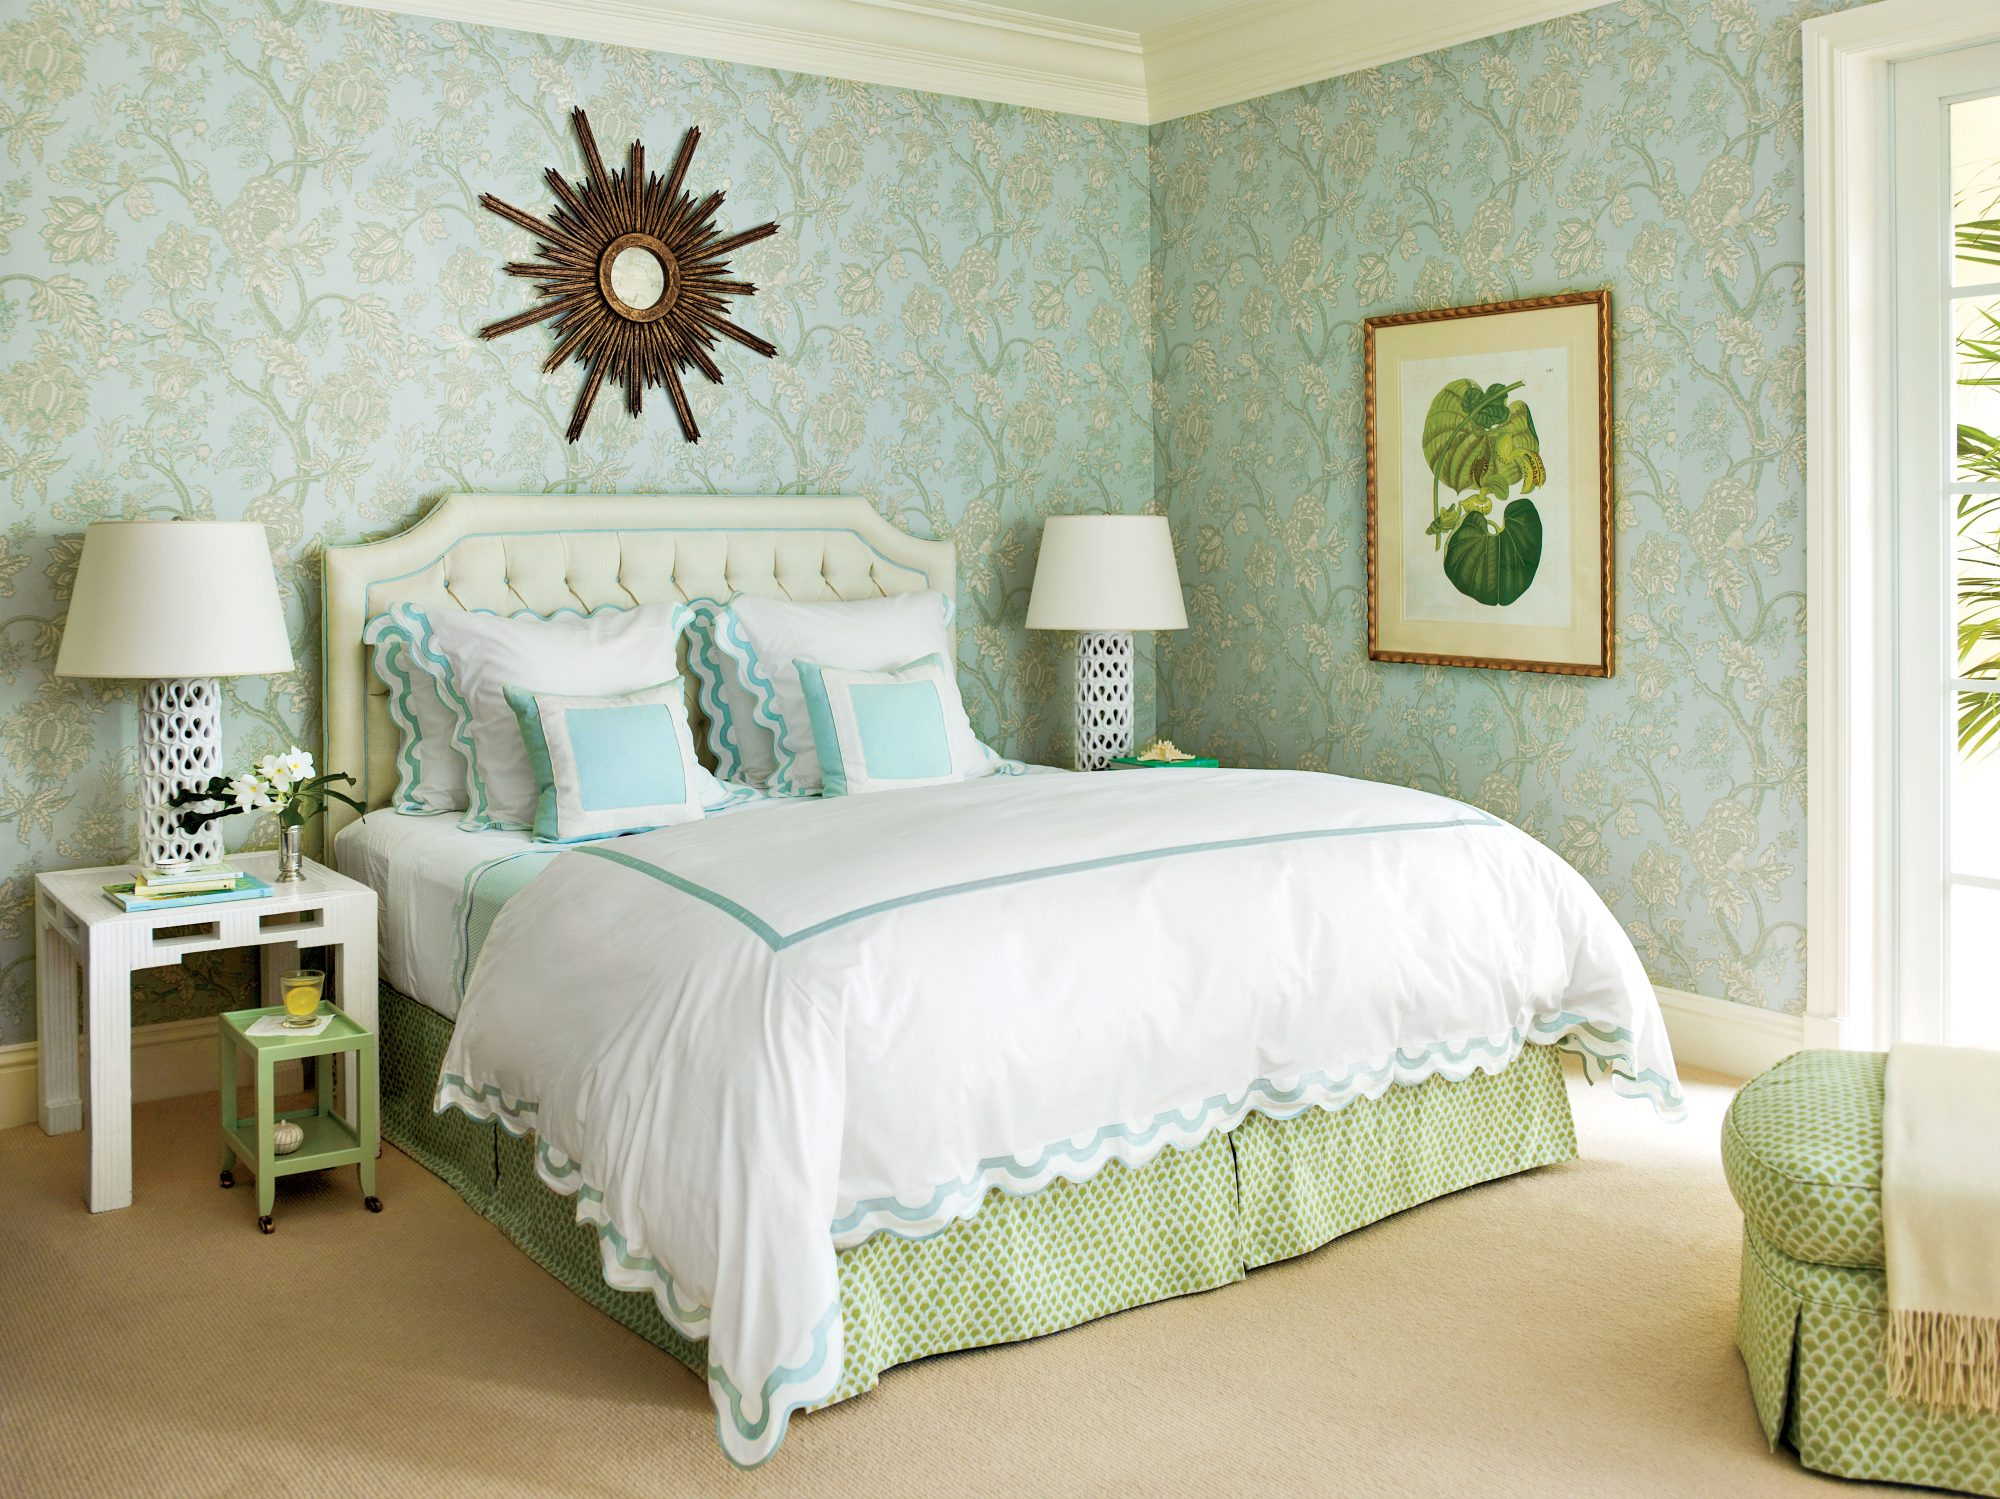 RX_1701_Cozy Bedroom_Blue Green Wallpaper Master Bedroom